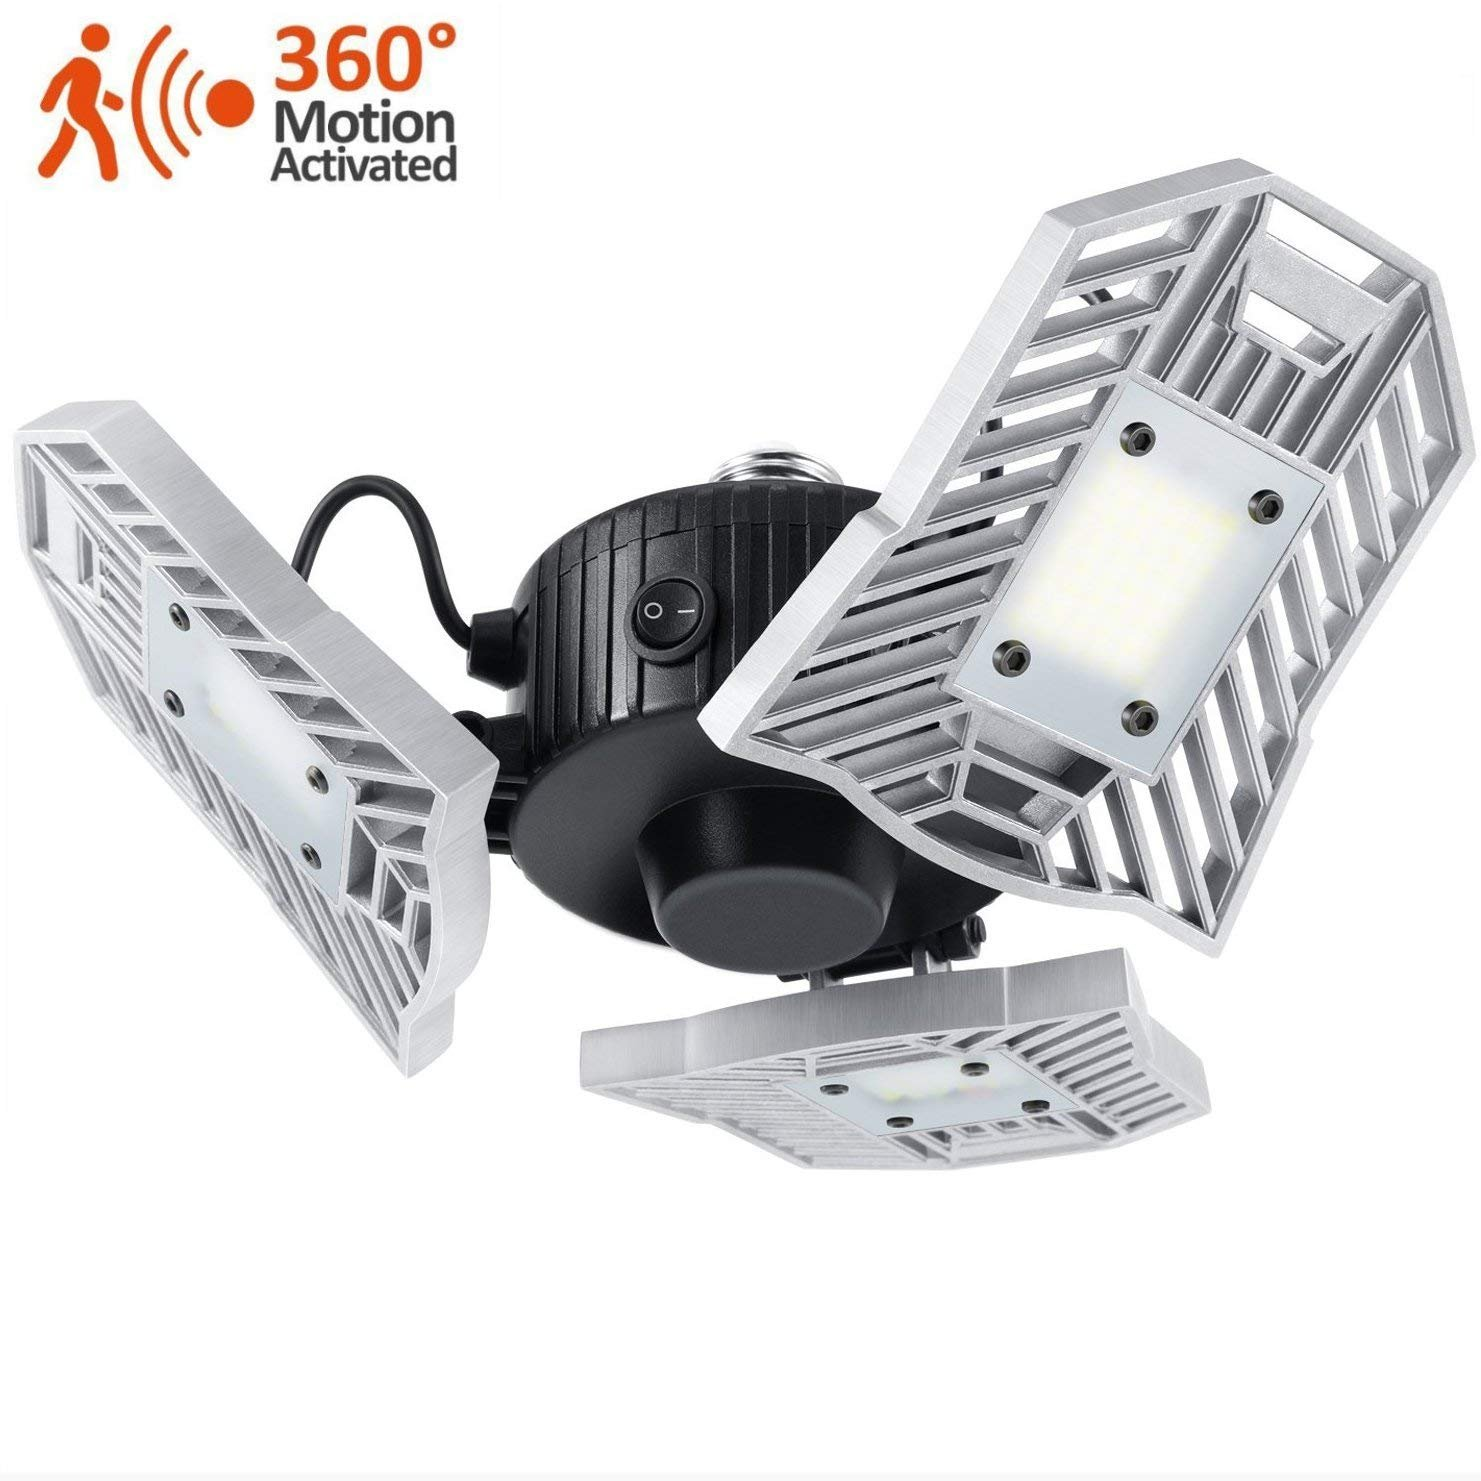 Motion-Activated LED Garage Lighting, 6000 Lumens E26 Security Ceiling Light with Built-in Motion Detector, 6000K Daylight